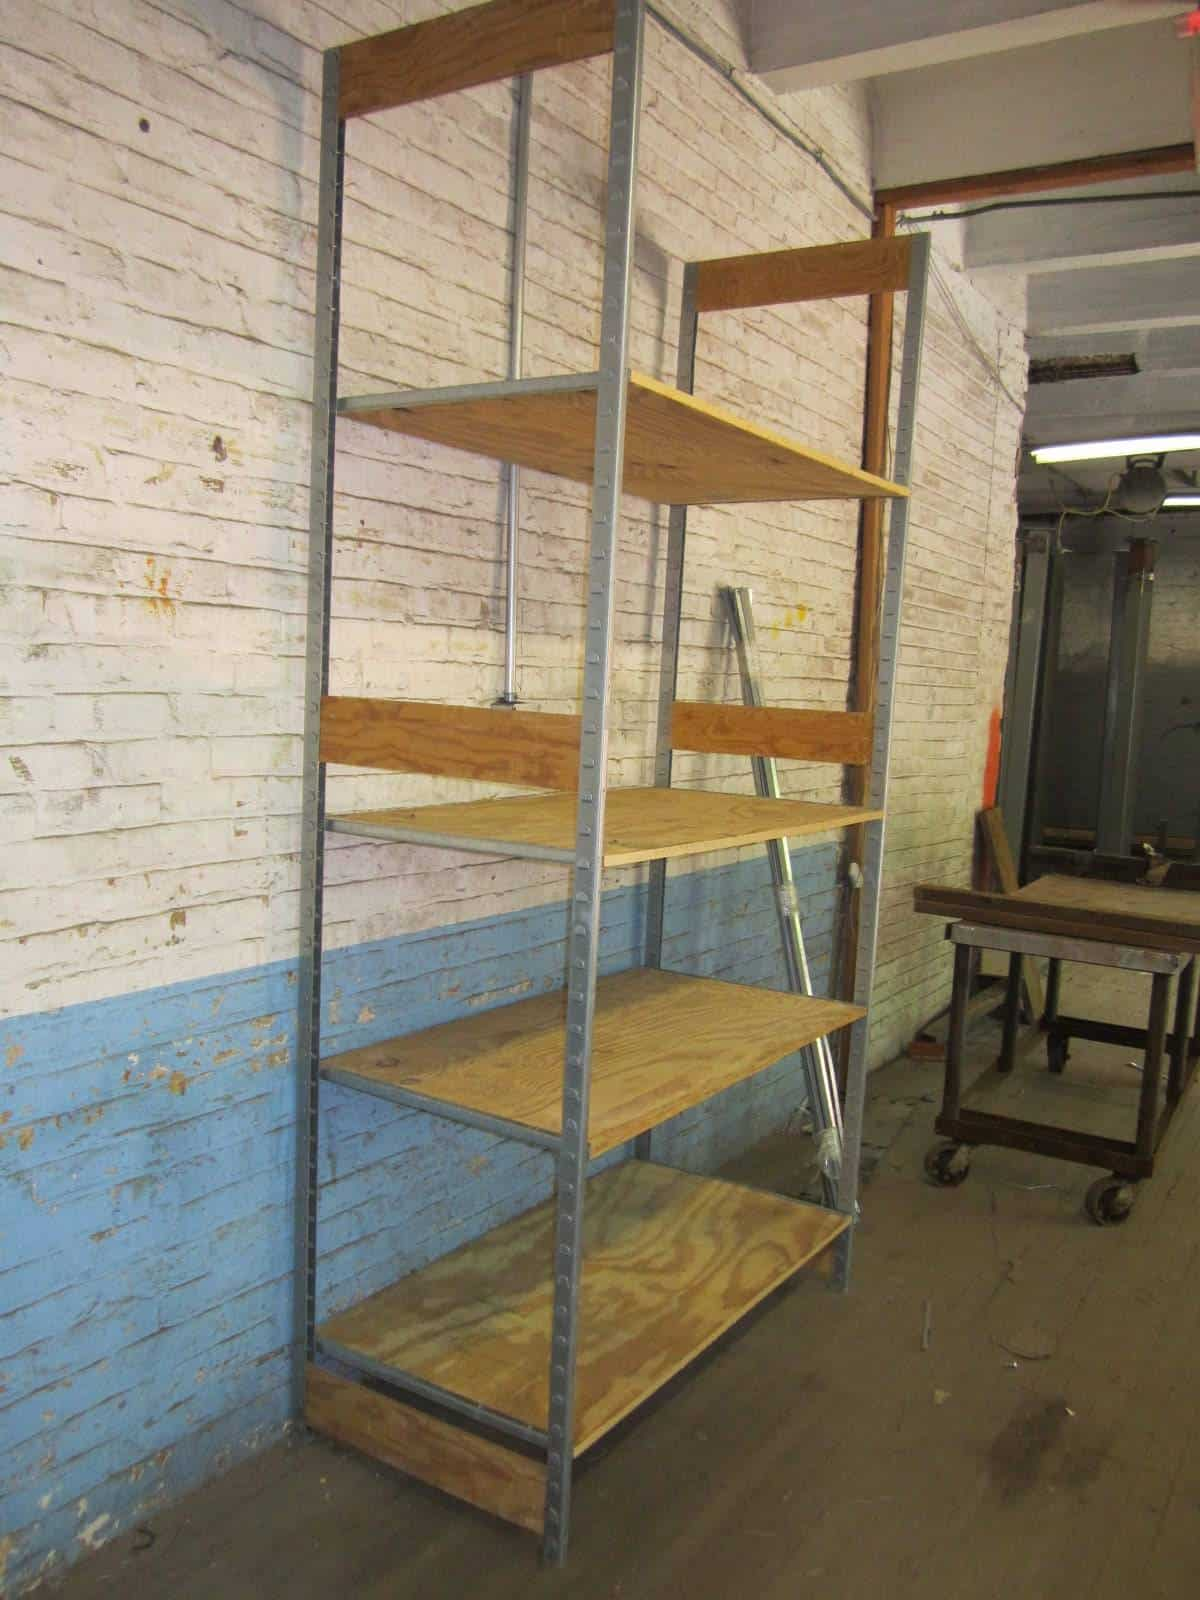 Stock Room Design: Used Retail, Stockroom Shelving